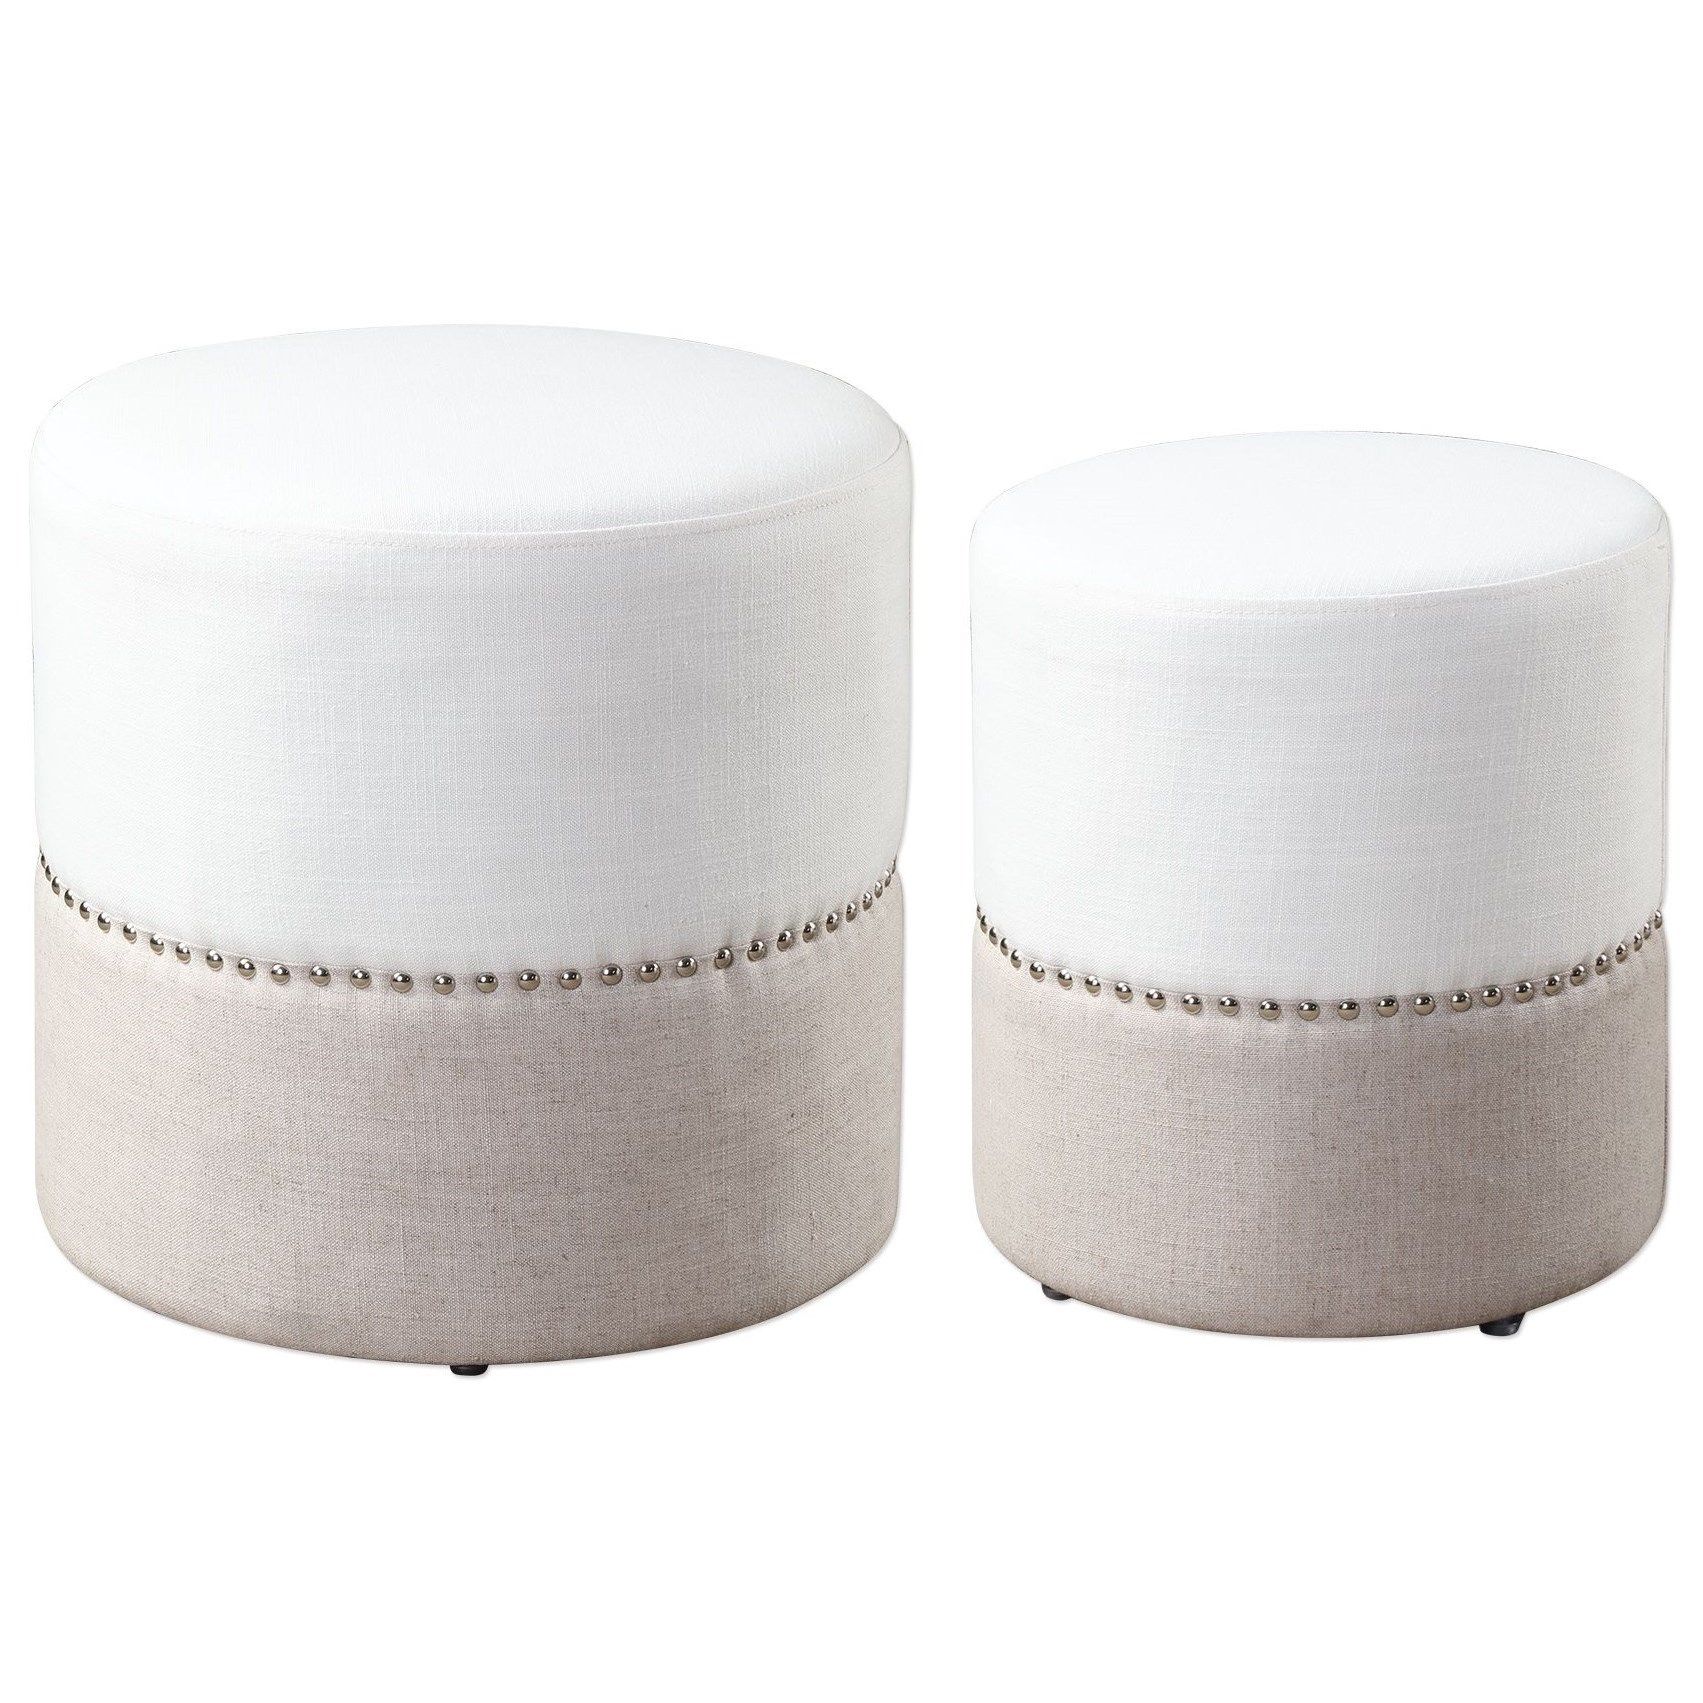 Accent Furniture - Ottomans Tilda Two-Toned Nesting Ottomans by Uttermost at Suburban Furniture